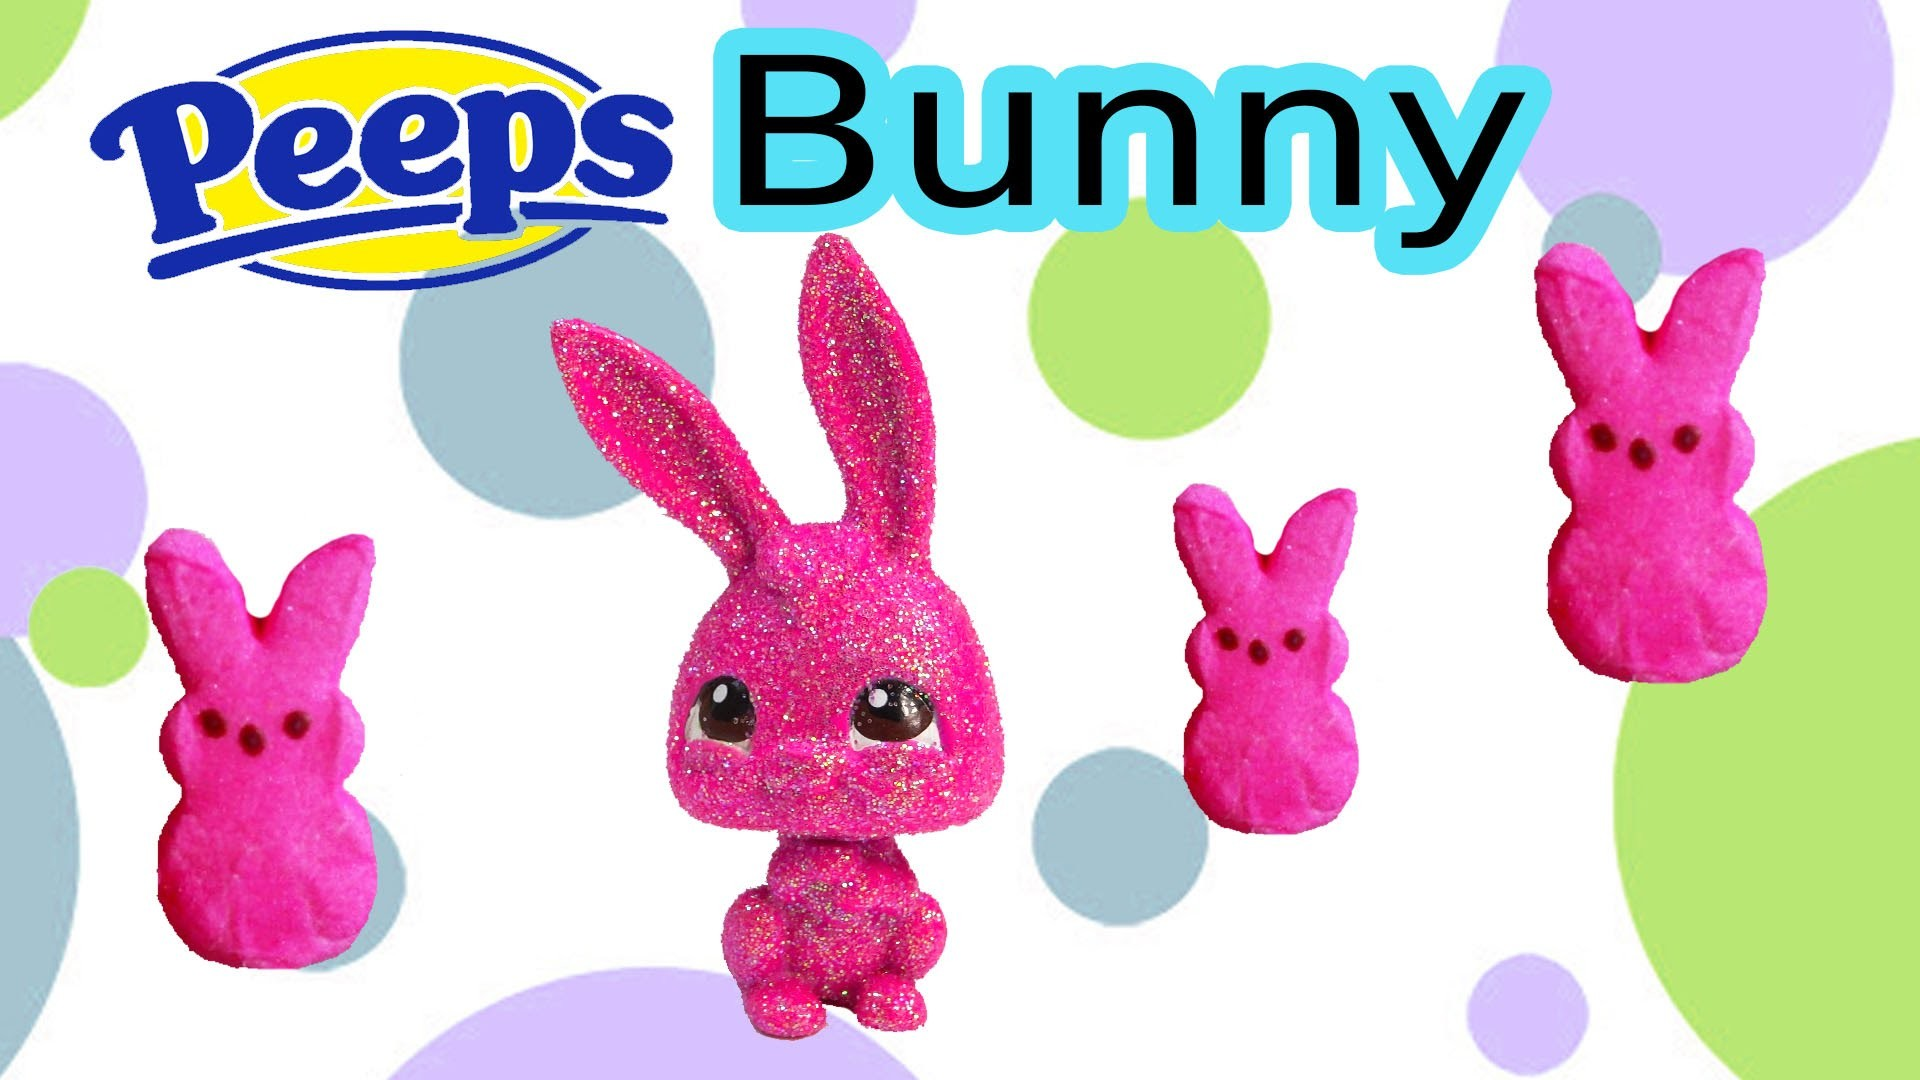 Custom LPS Easter Sugar Marshmallow PEEPS Bunny Chocolate Glitter Candy DIY Littlest Pet Shop Craft